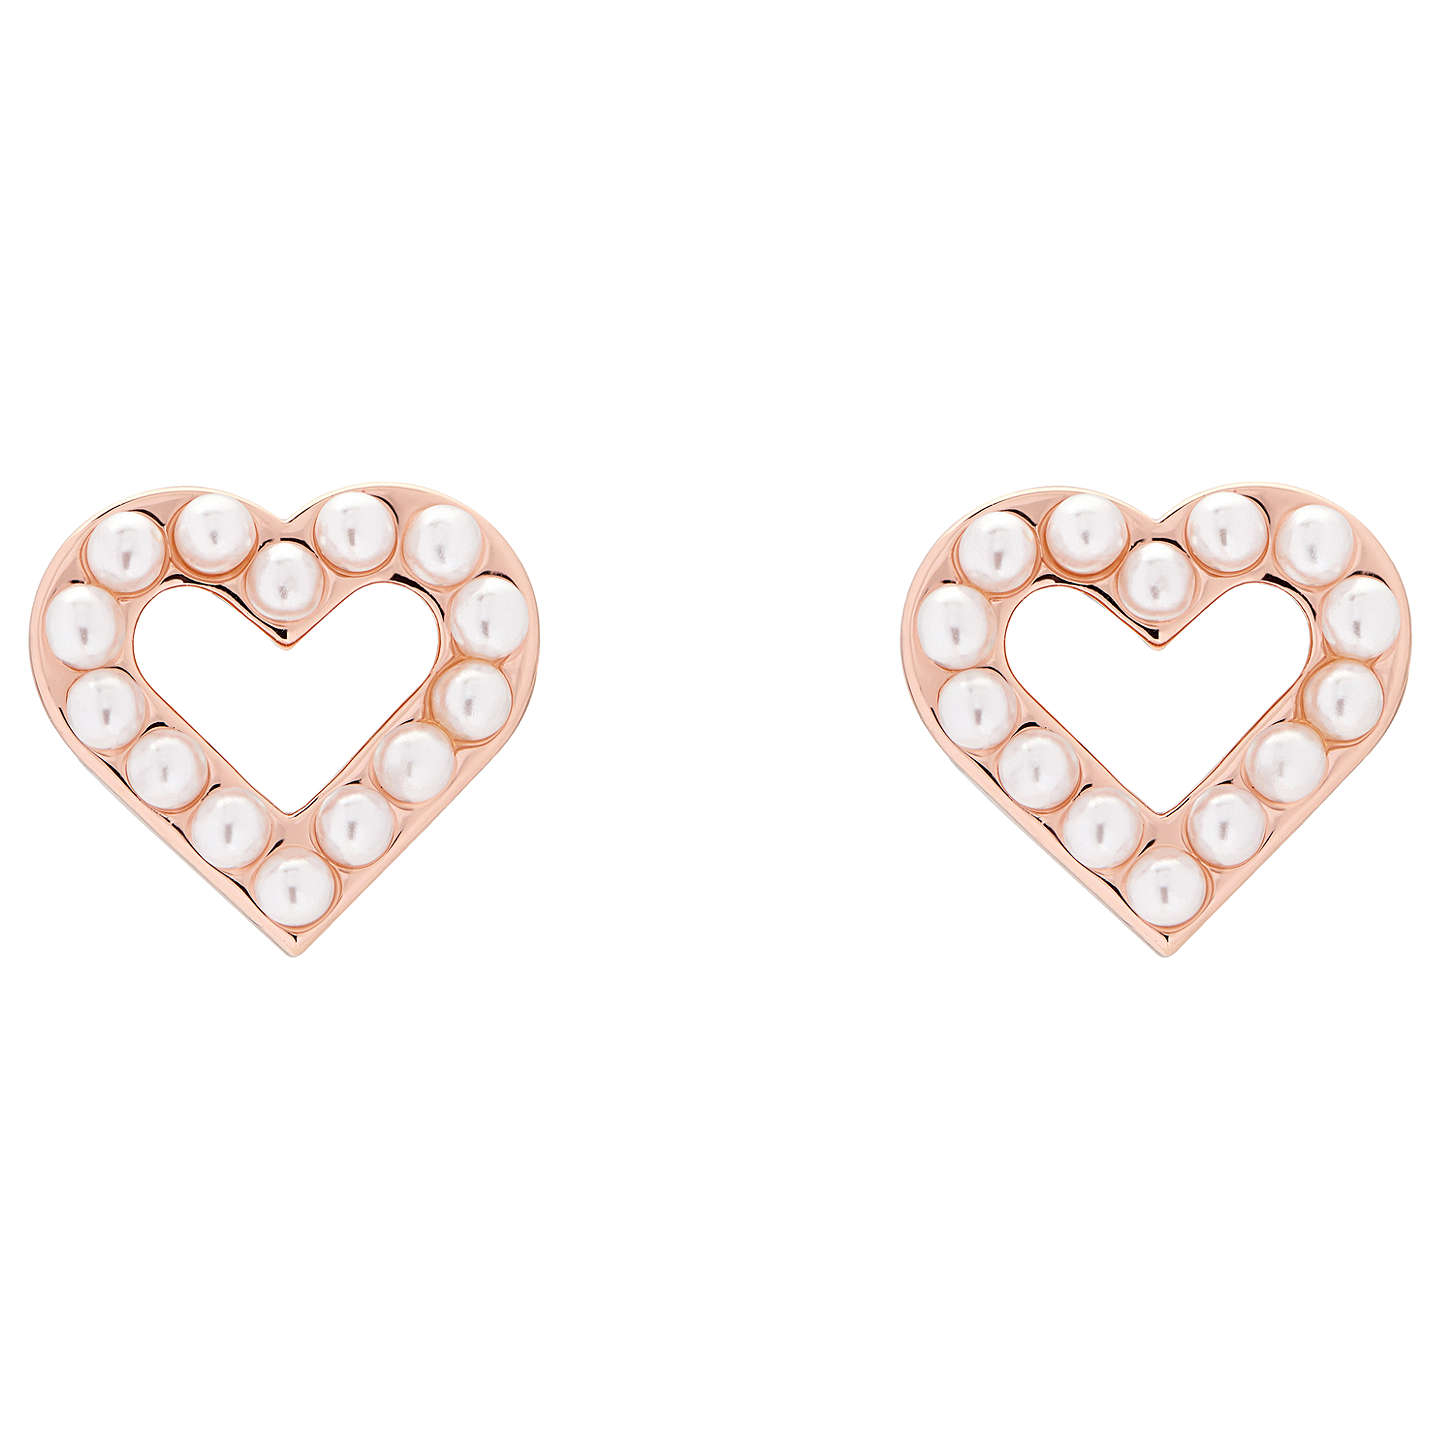 jewellery silver oliver bonas heart earrings stud ju